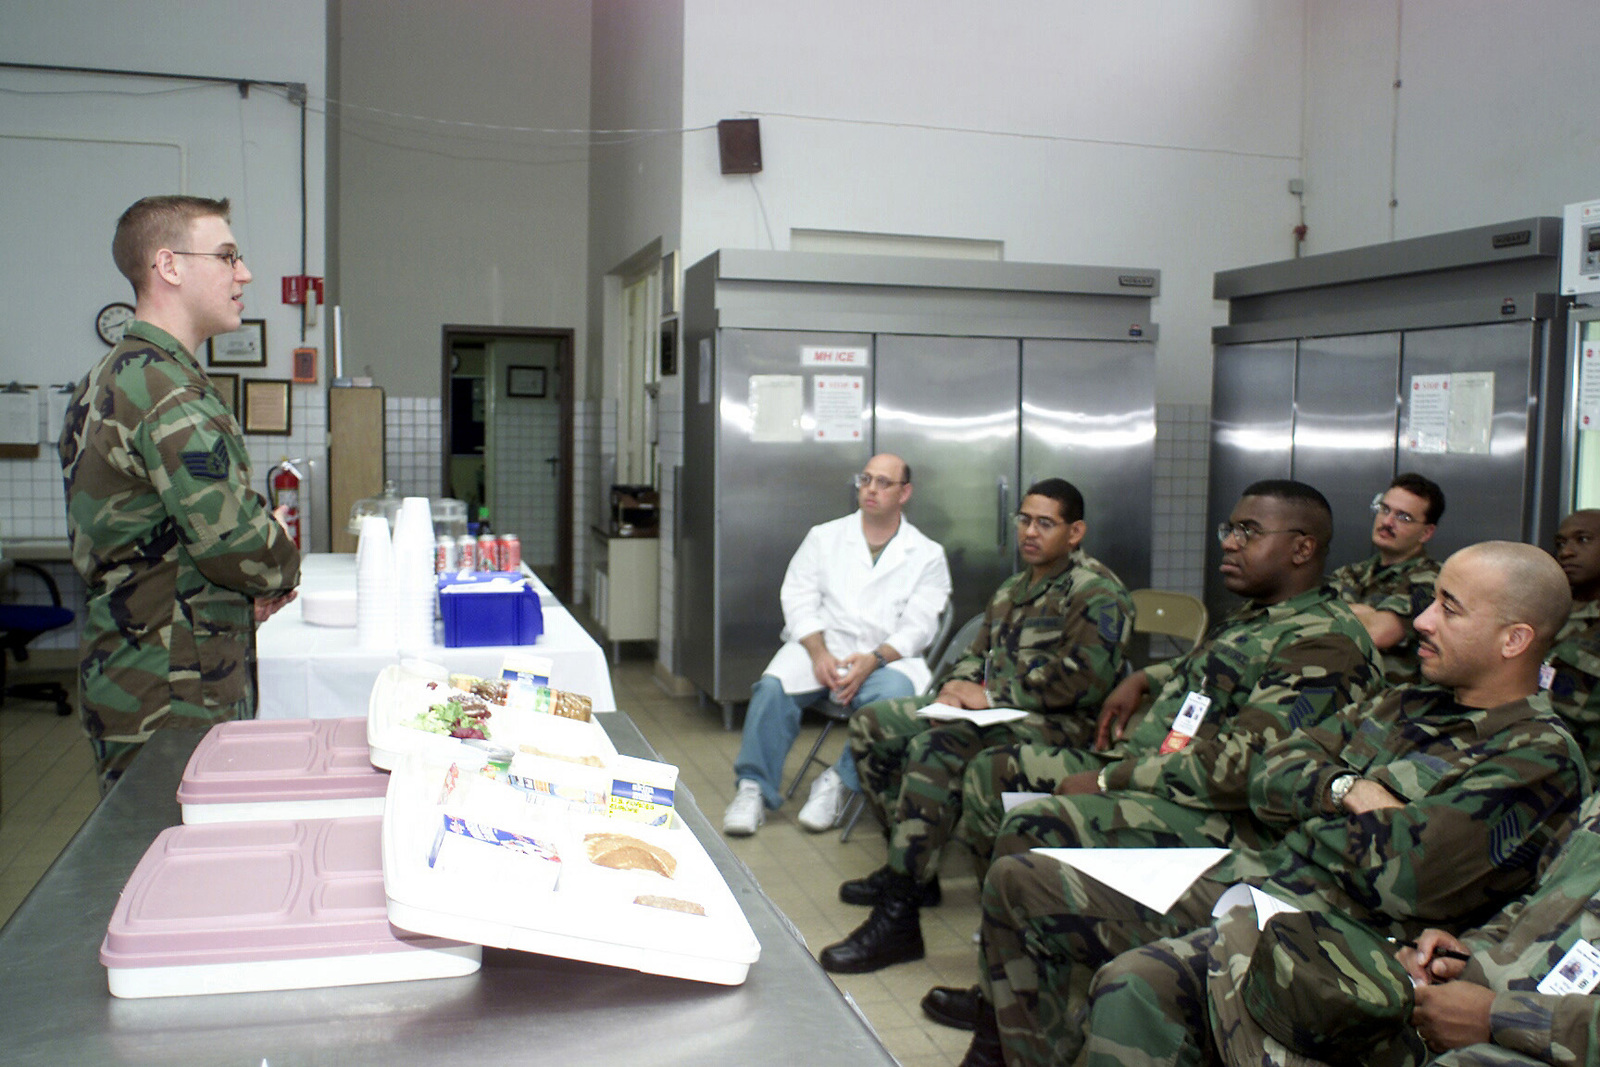 STAFF Sergeant (SSGT) Jason Herman, Diet Therapy Journeyman assigned to the 52d Medical Support Squadron, Spangdahlem AB, Germany displays two patient food tray samples to staff members, during a monthly ethnic food quality assurance test